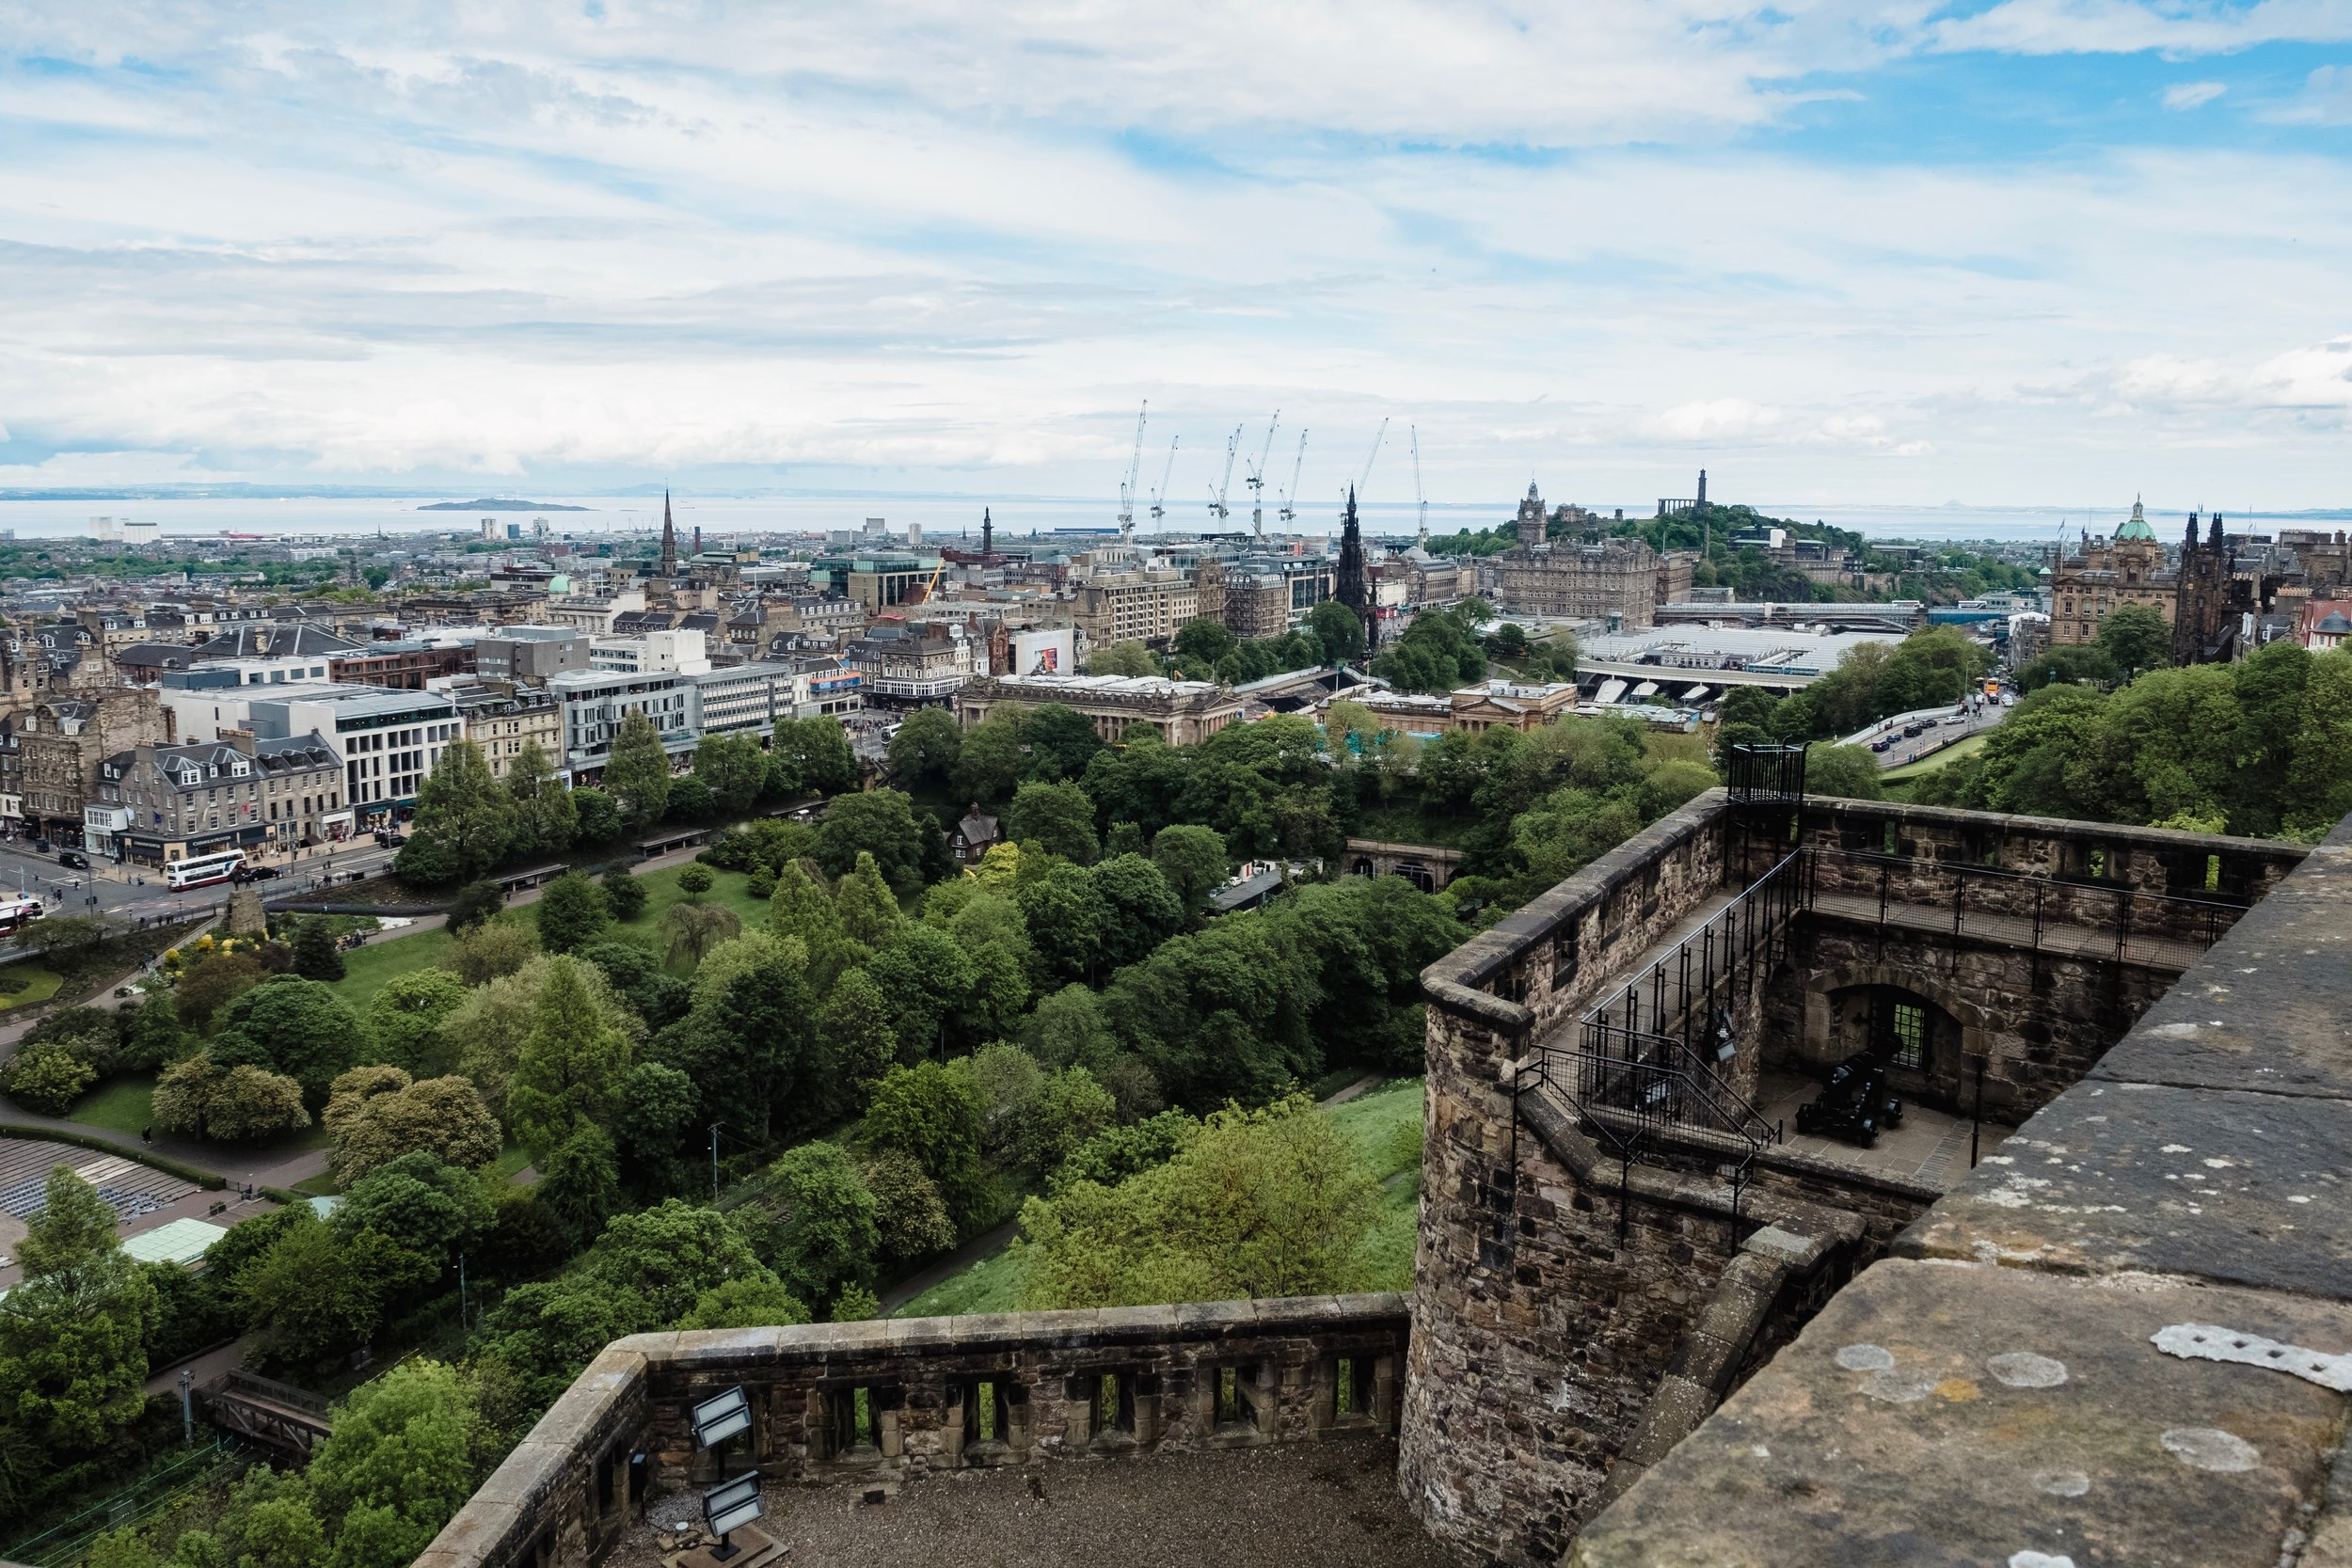 Princes Street Gardens and downtown Edinburgh from the top of Edinburgh Castle.